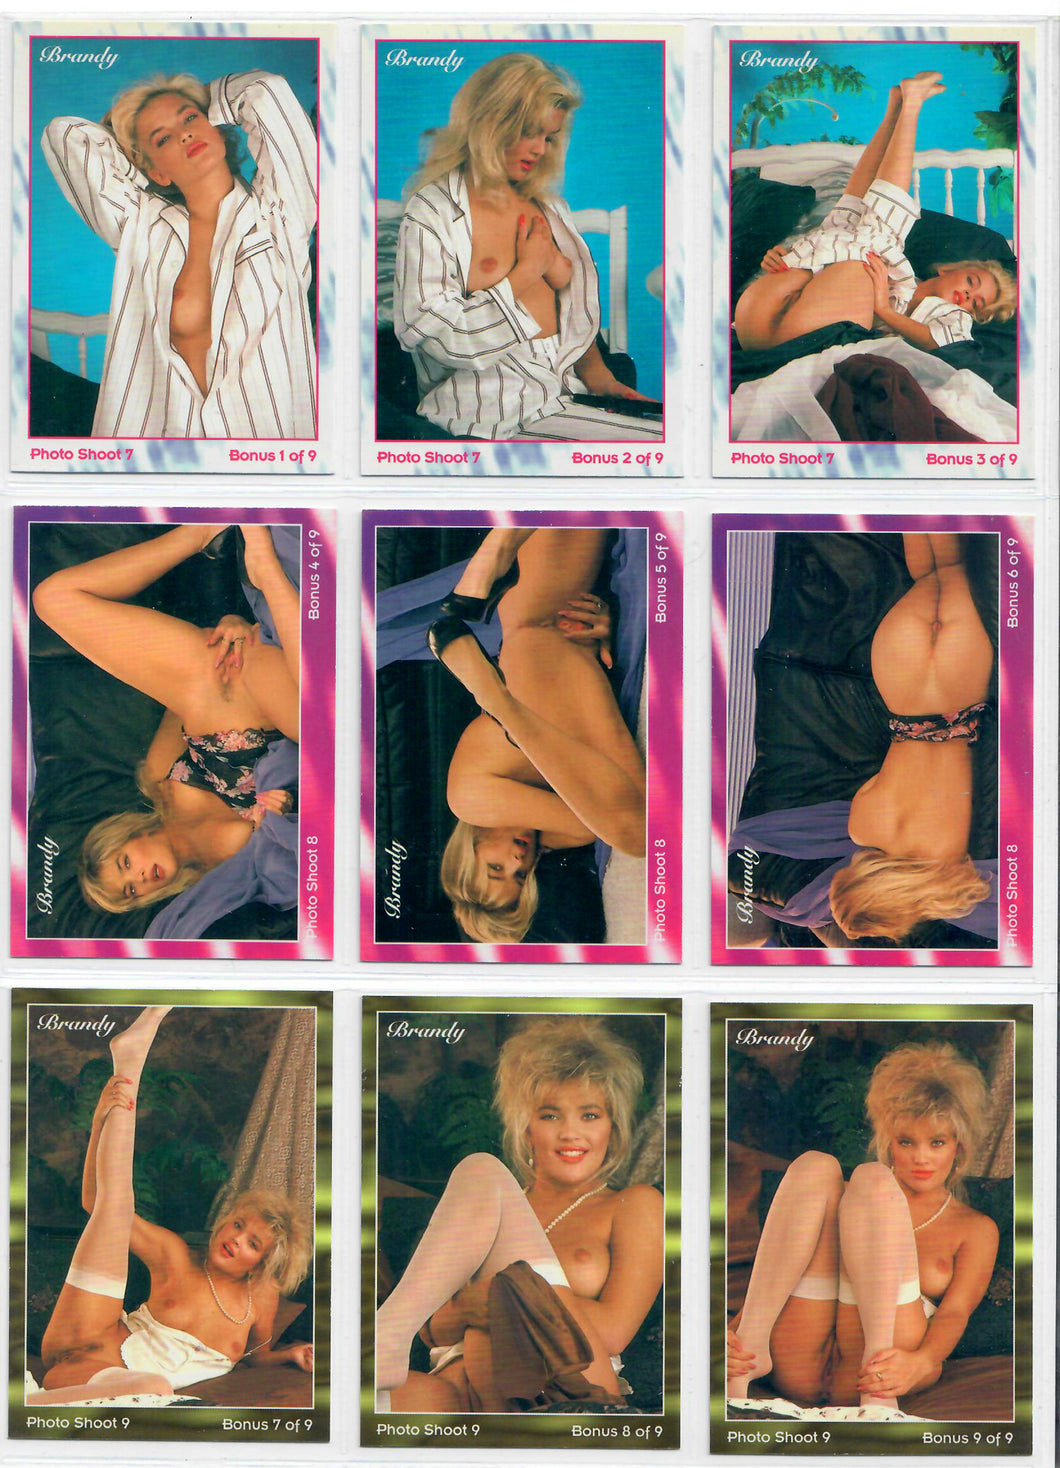 Hot Shots - Brandy Ledford - Salute to BRANDY - 9 Card Bonus Set